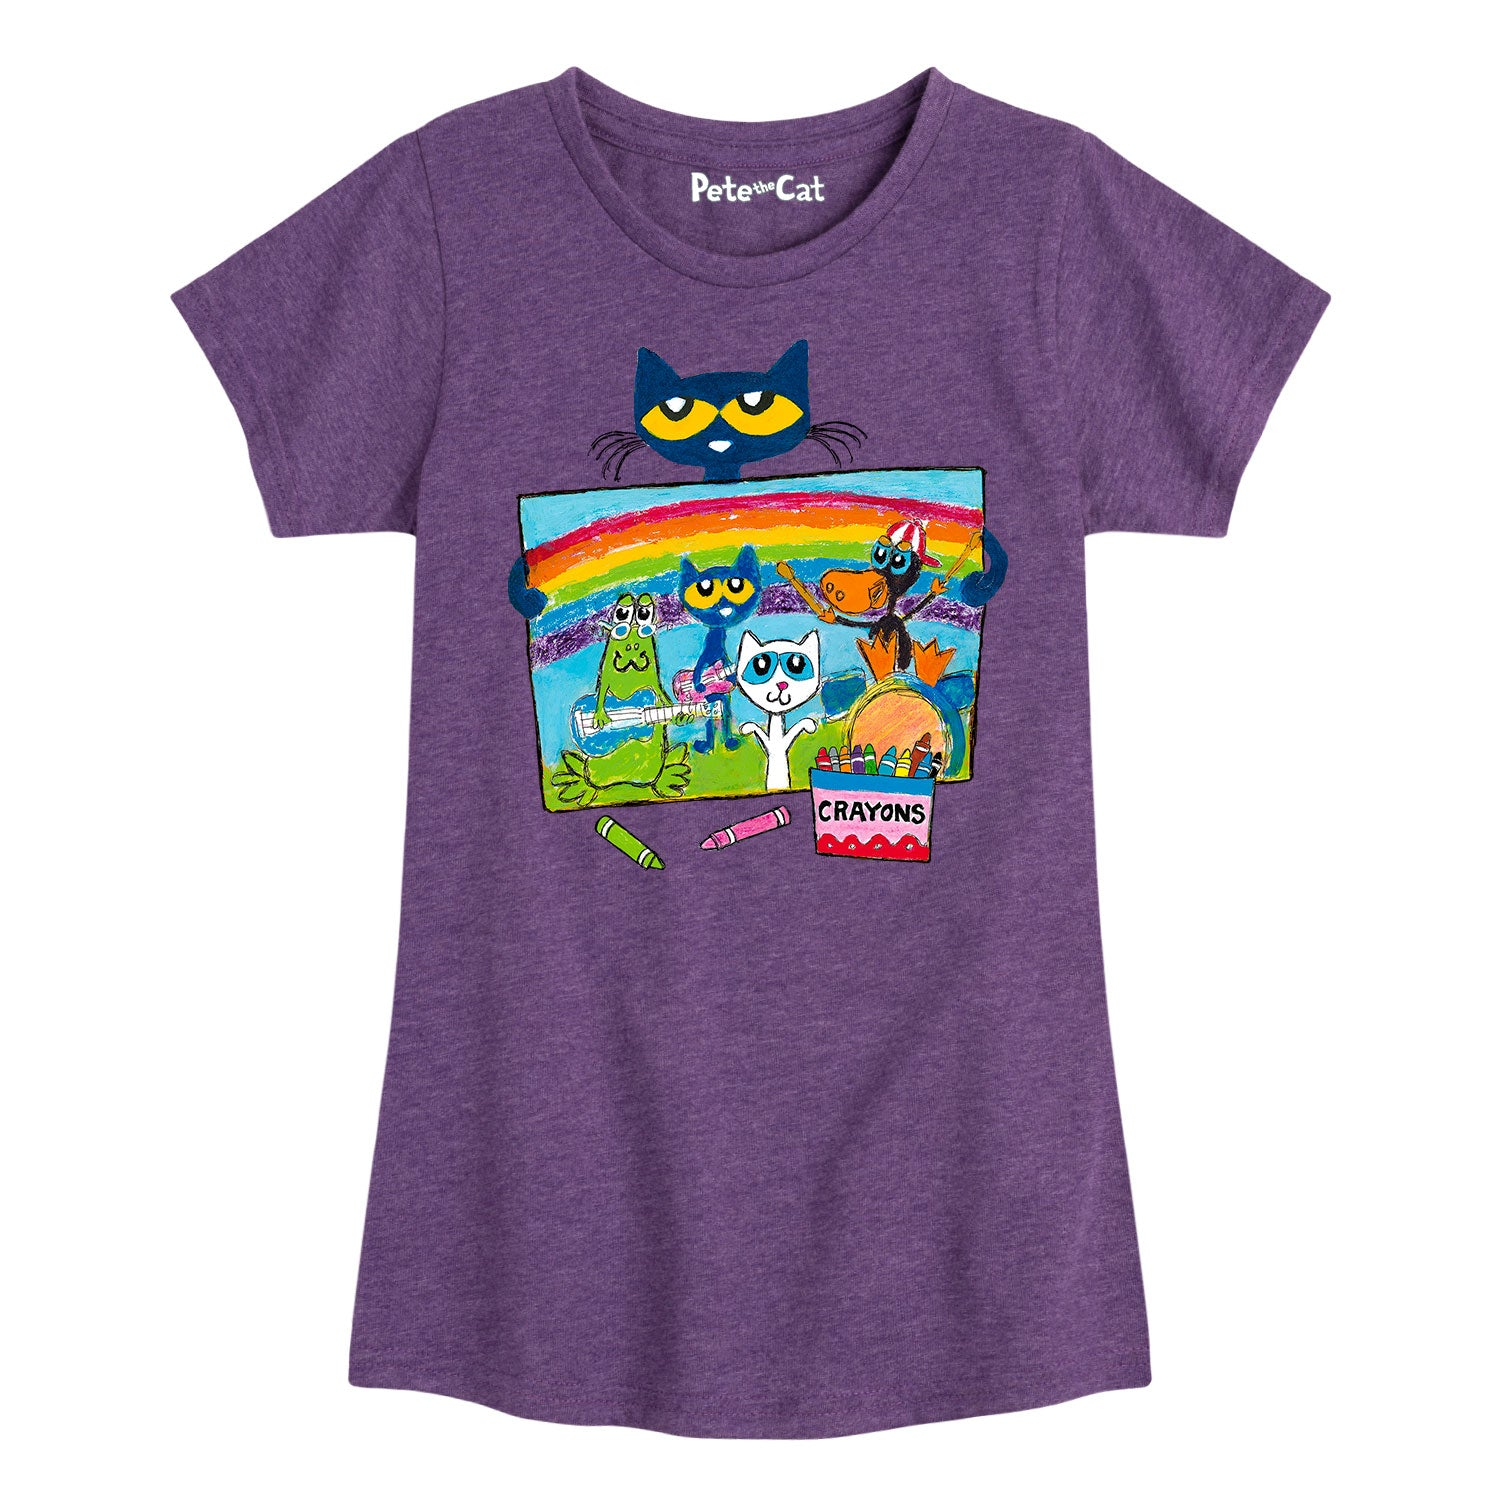 Pete Crayon Drawing - Youth & Toddler Girls Short Sleeve T-Shirt